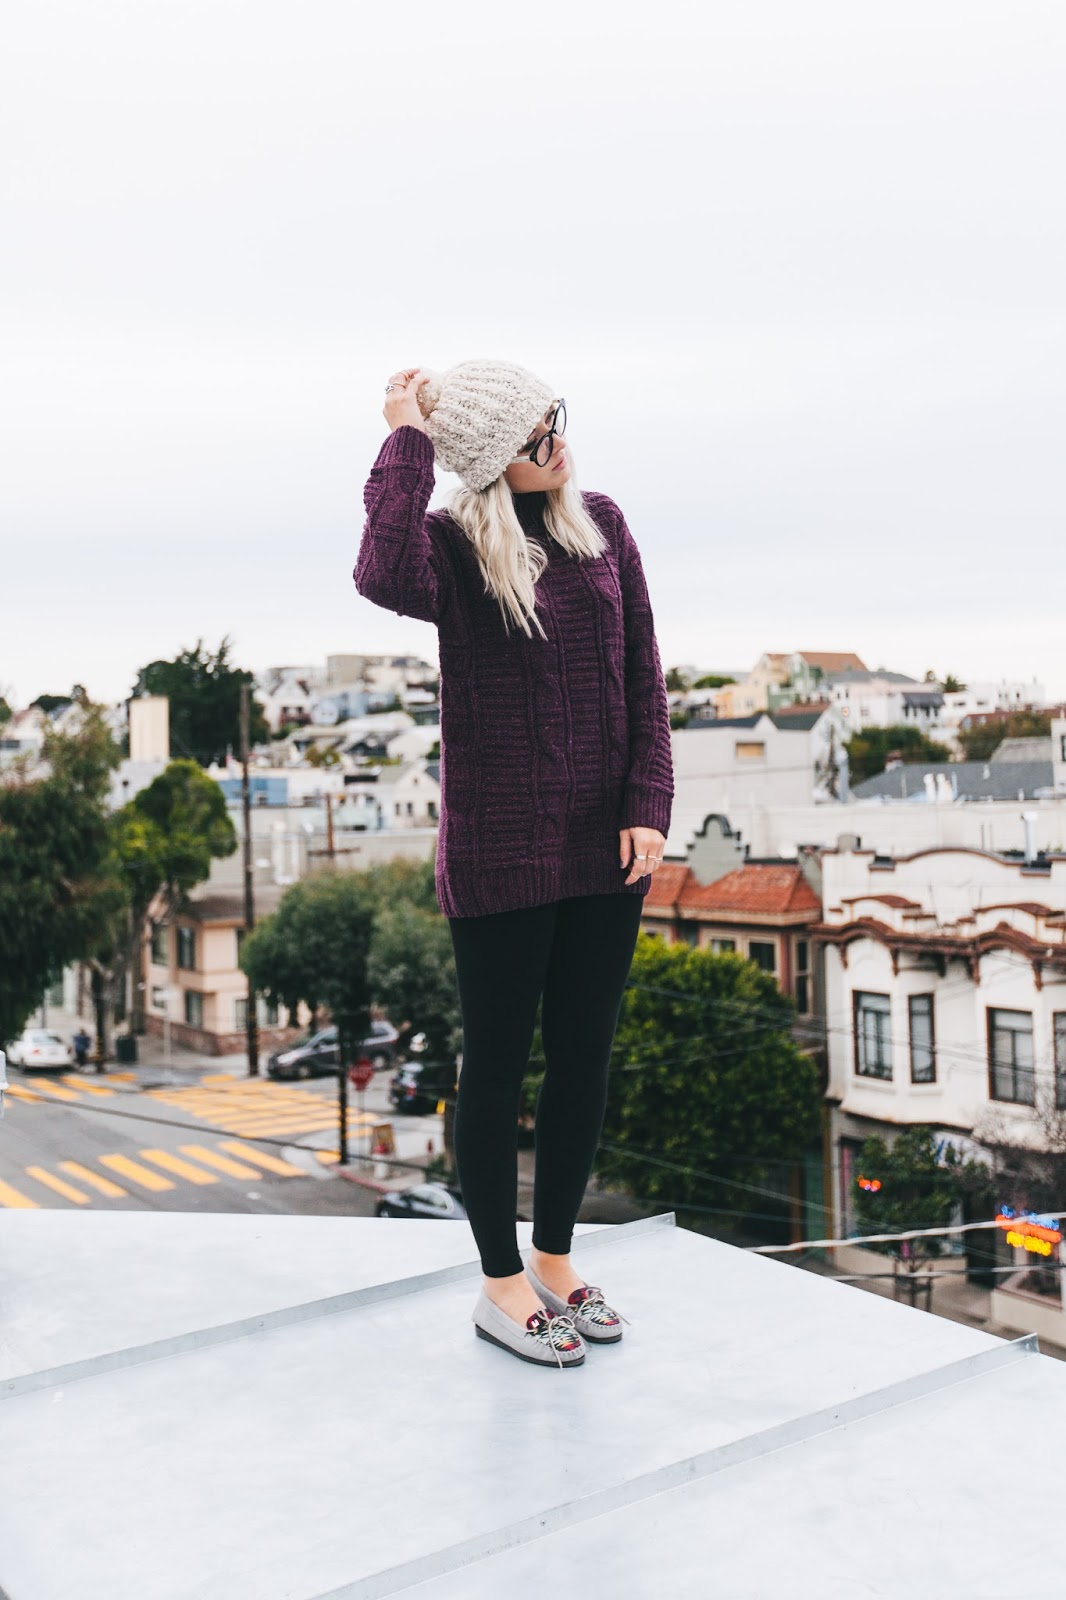 cozy outfits, reading nook, fashion blogger, sf style, san francisco fashion blogger, chunky sweater, garage clothing, le bunny bleu, crimson, cute moccasins, bryn newman, stone fox style